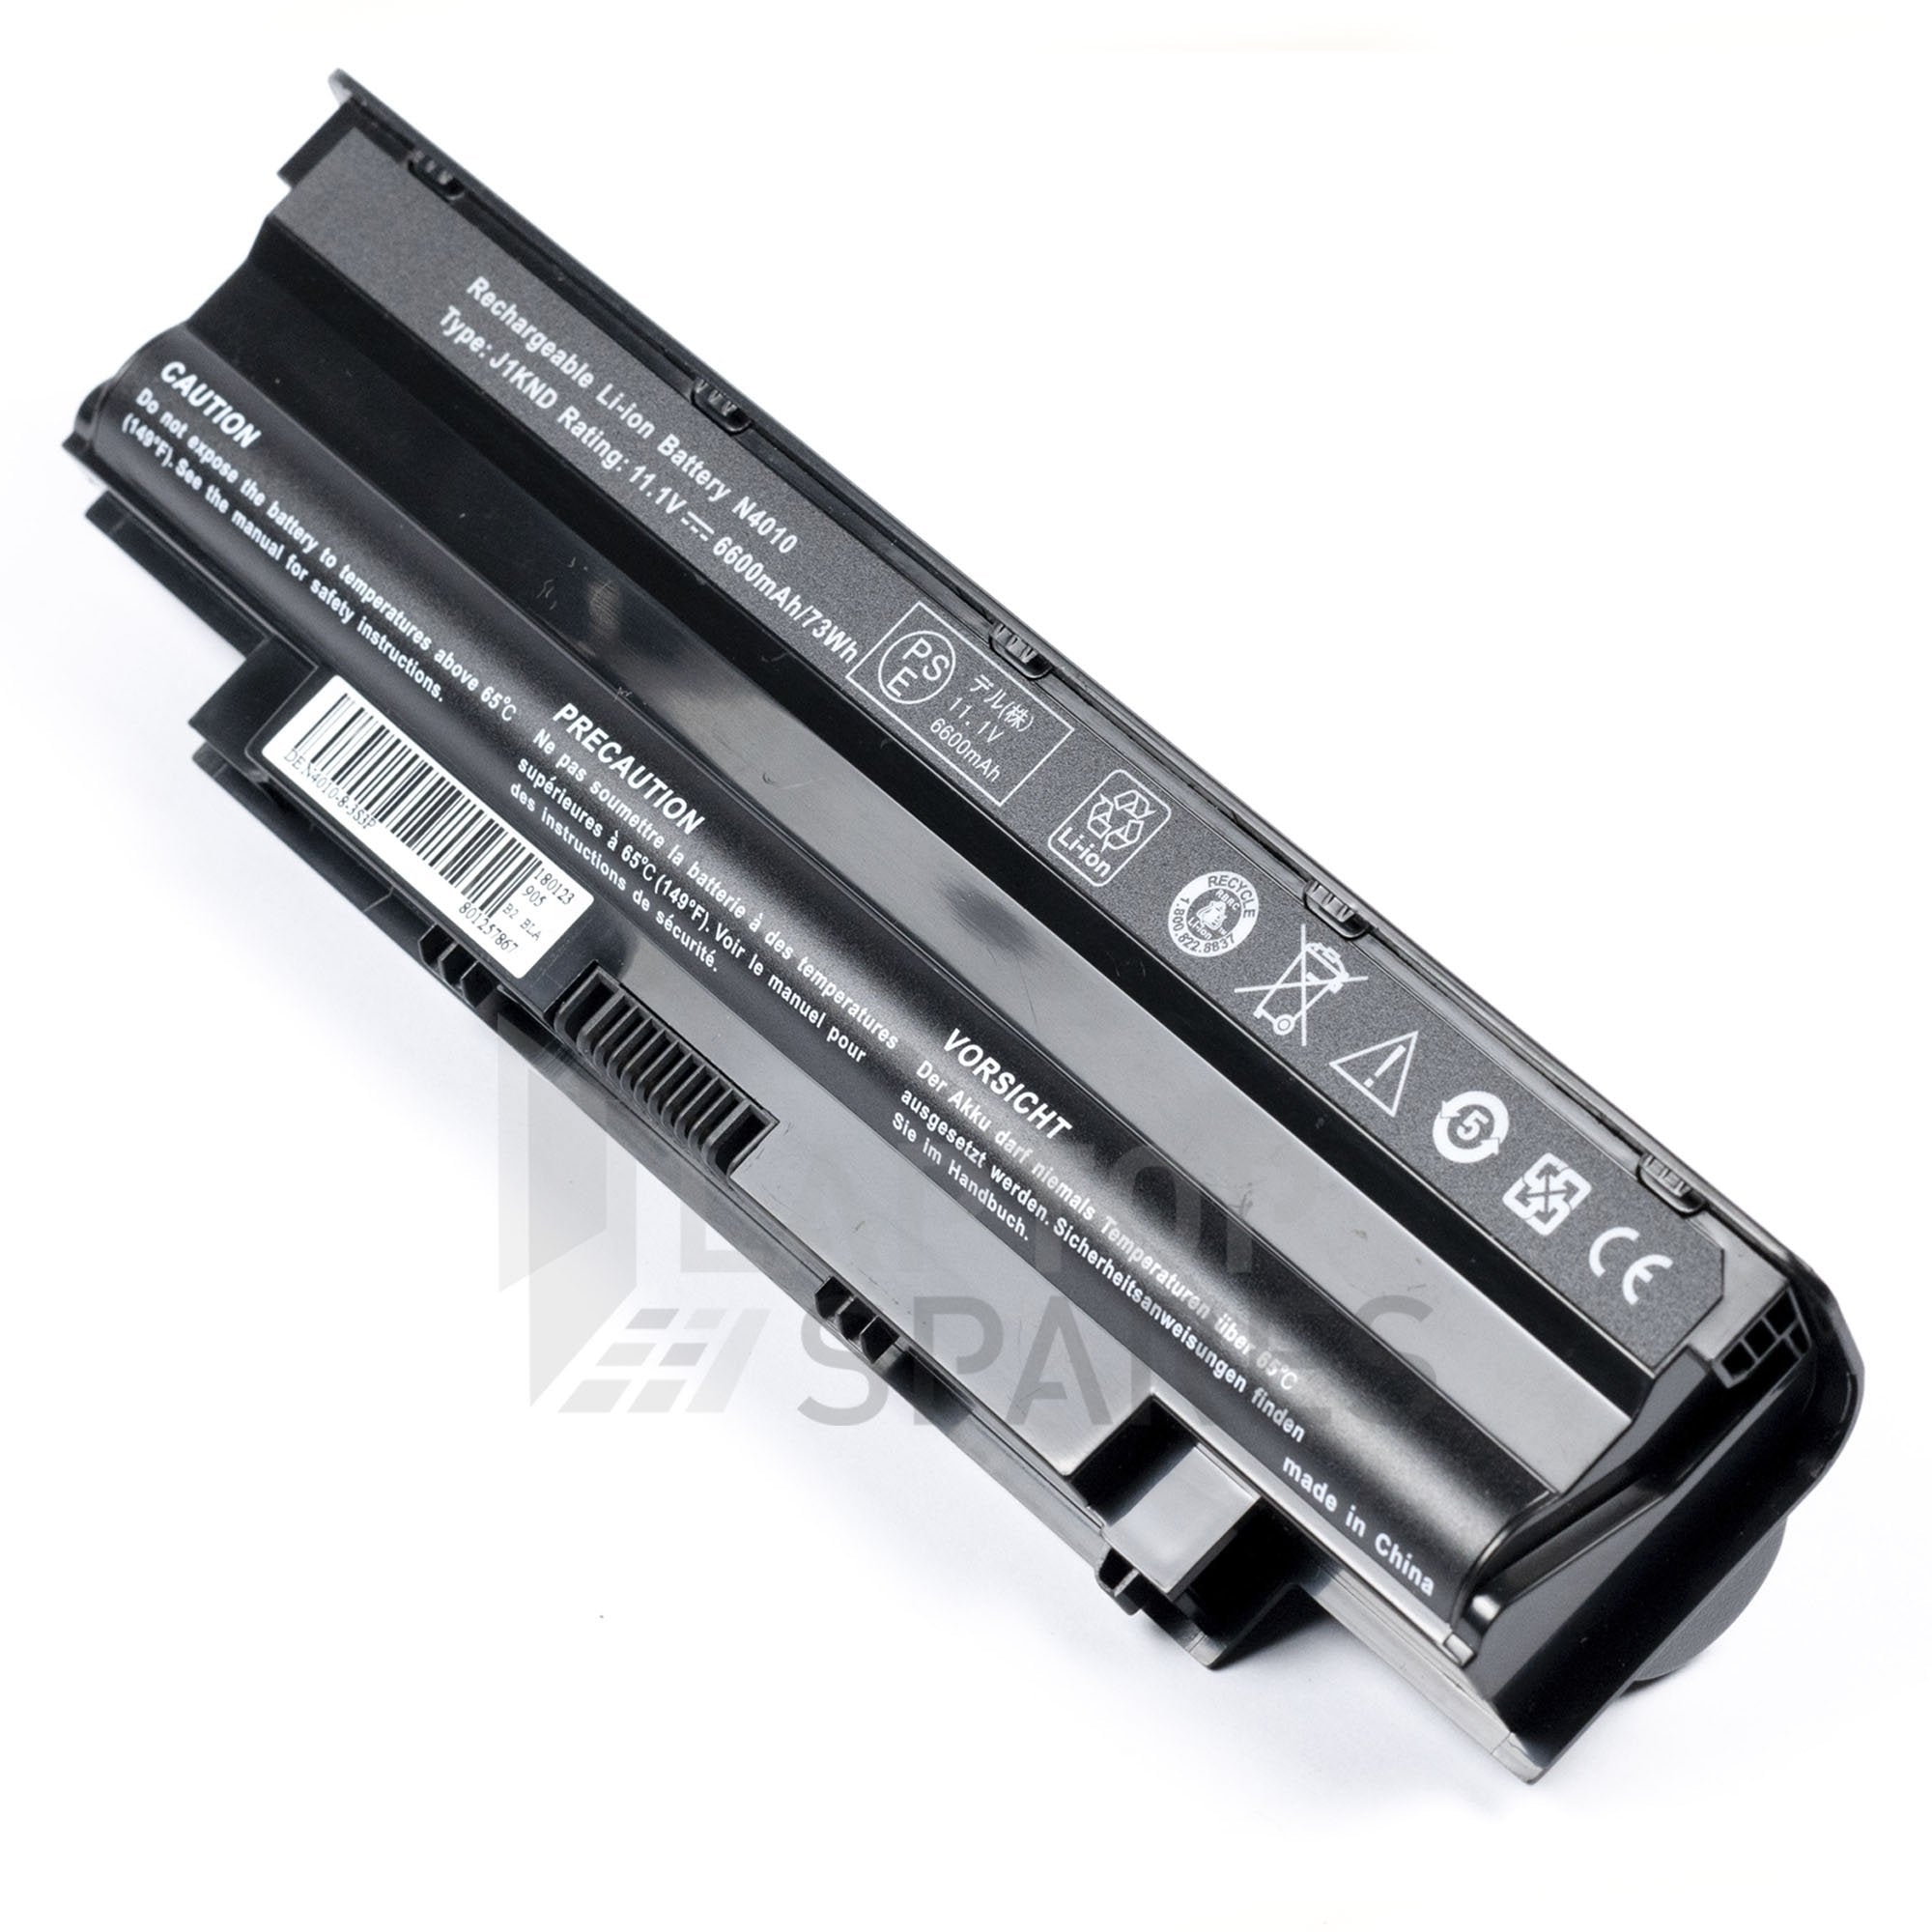 Dell Inspiron M5010 6600mAh 9 Cell Battery